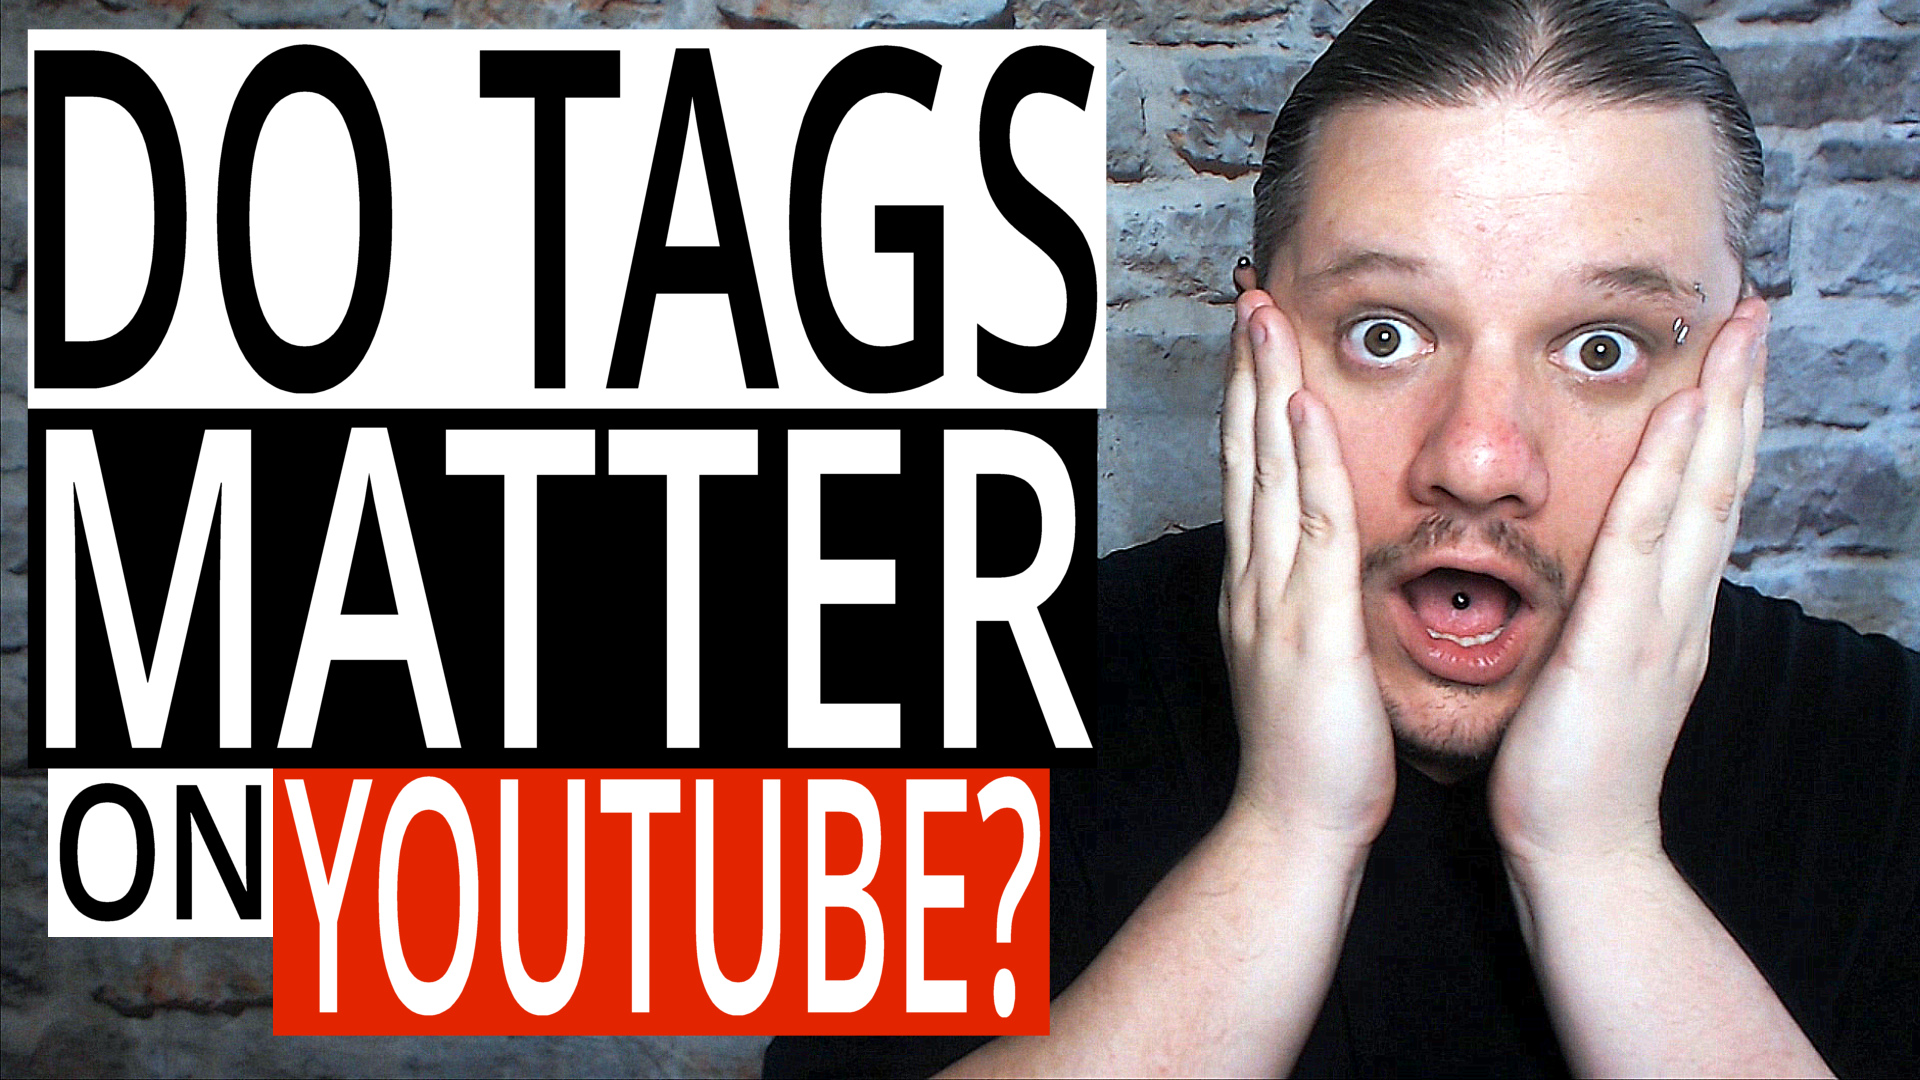 alan spicer,alanspicer,youtube tags optimization,youtube tags tutorial,do tags matter on youtube,do youtube tags matter,do youtube tags really work,do youtube tags work,do youtube tags do anything,how do youtube tags work 2018,how does youtube tags work,youtube tags,youtube tags do they matter,youtube tags for small youtubers,youtube tags for large youtubers,tags,tags youtube,video seo,seo tags,video tags,youtube seo,youtube tags 2018,youtube tags 2019